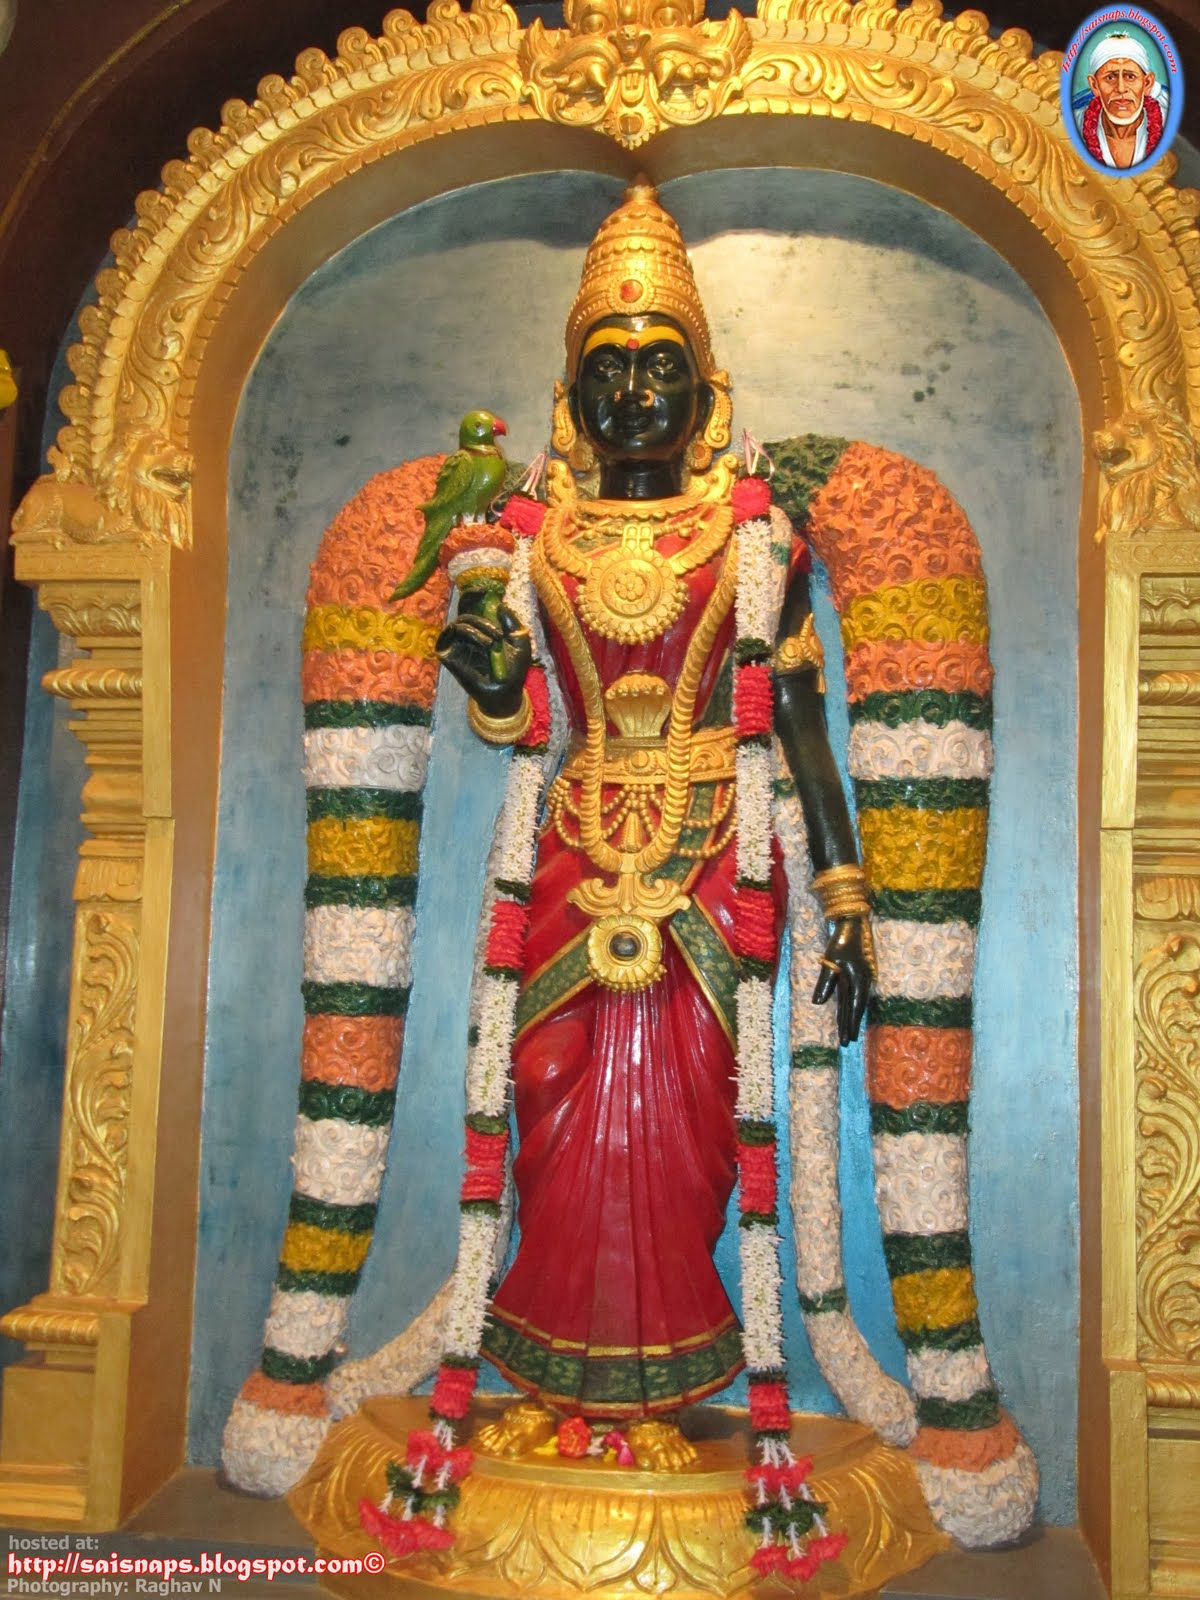 Sai Wallpaper Sri Anna Baba Mandir Poonamallee High Road